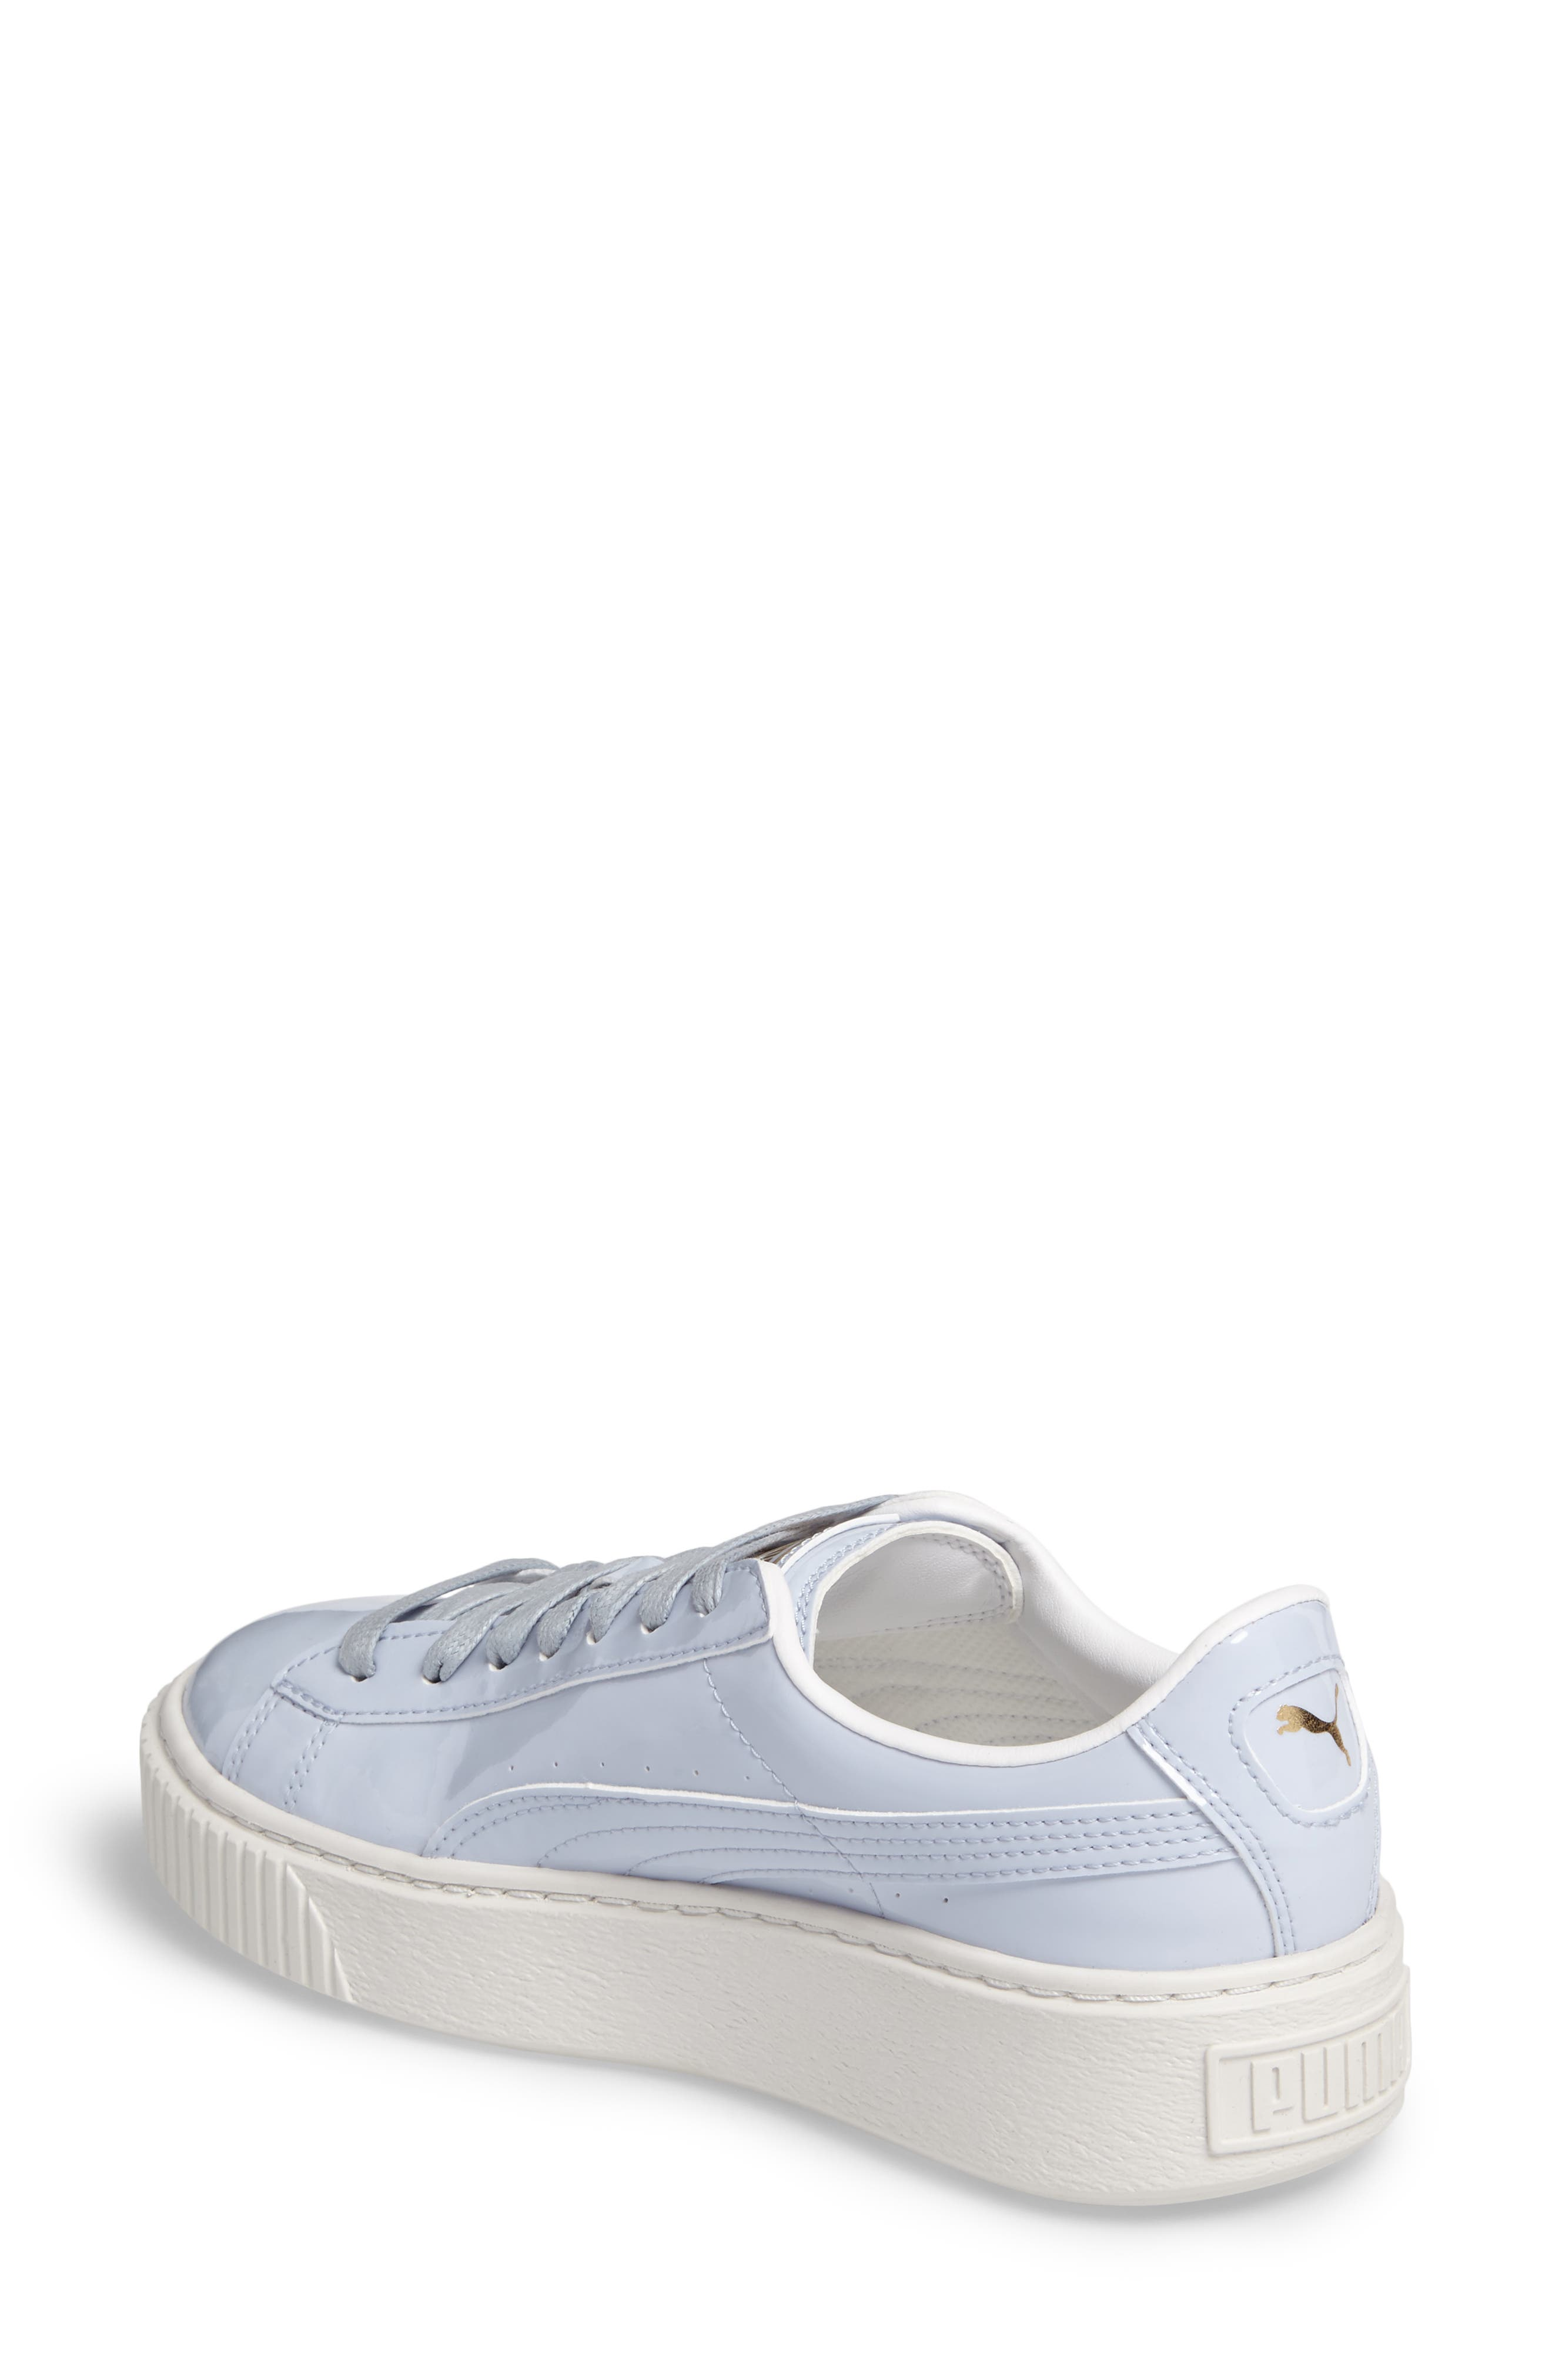 Alternate Image 2  - PUMA Basket Platform Sneaker (Women)